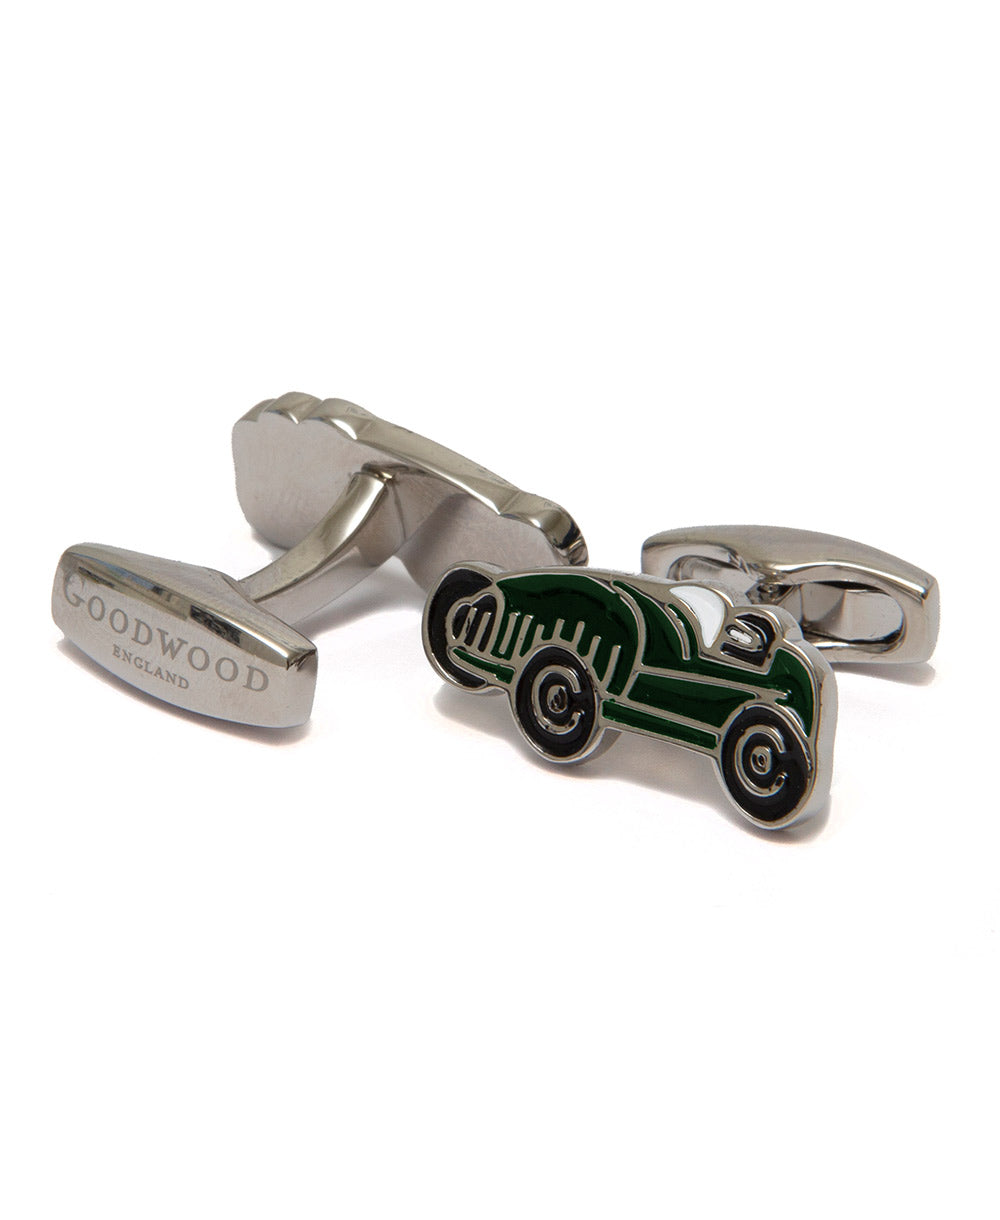 Goodwood Cartoon Car Cufflinks in dark green and black